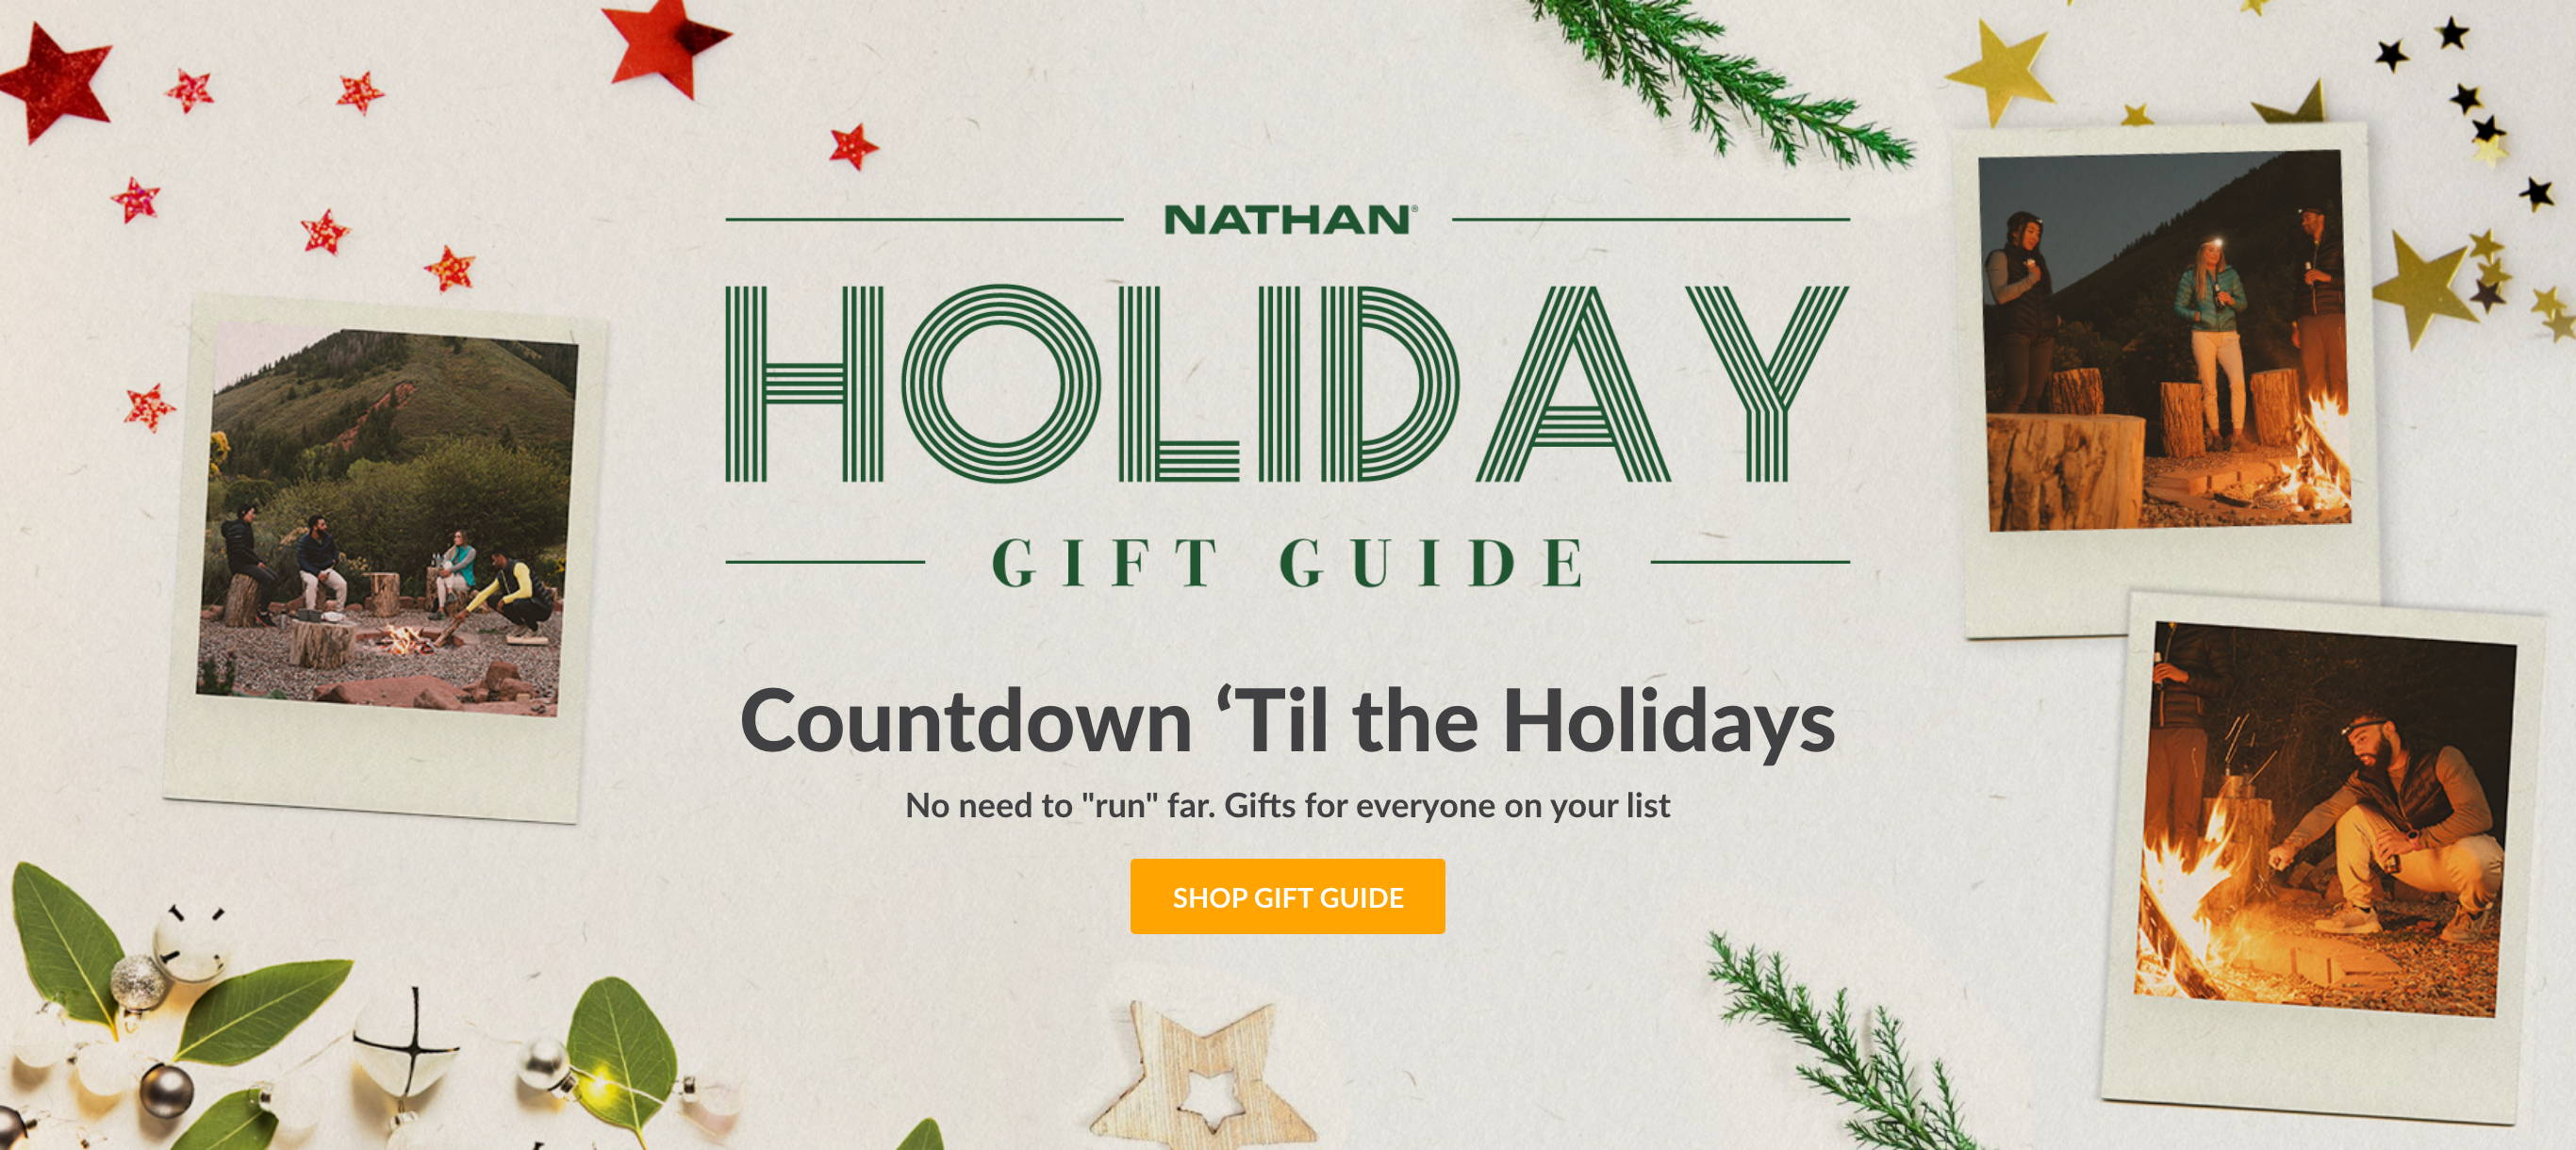 Nathan Holiday Gift Guide. Countdown 'Til The Holidays. No need to run far. Gifts for everyone on your list. Shop Gift Guide